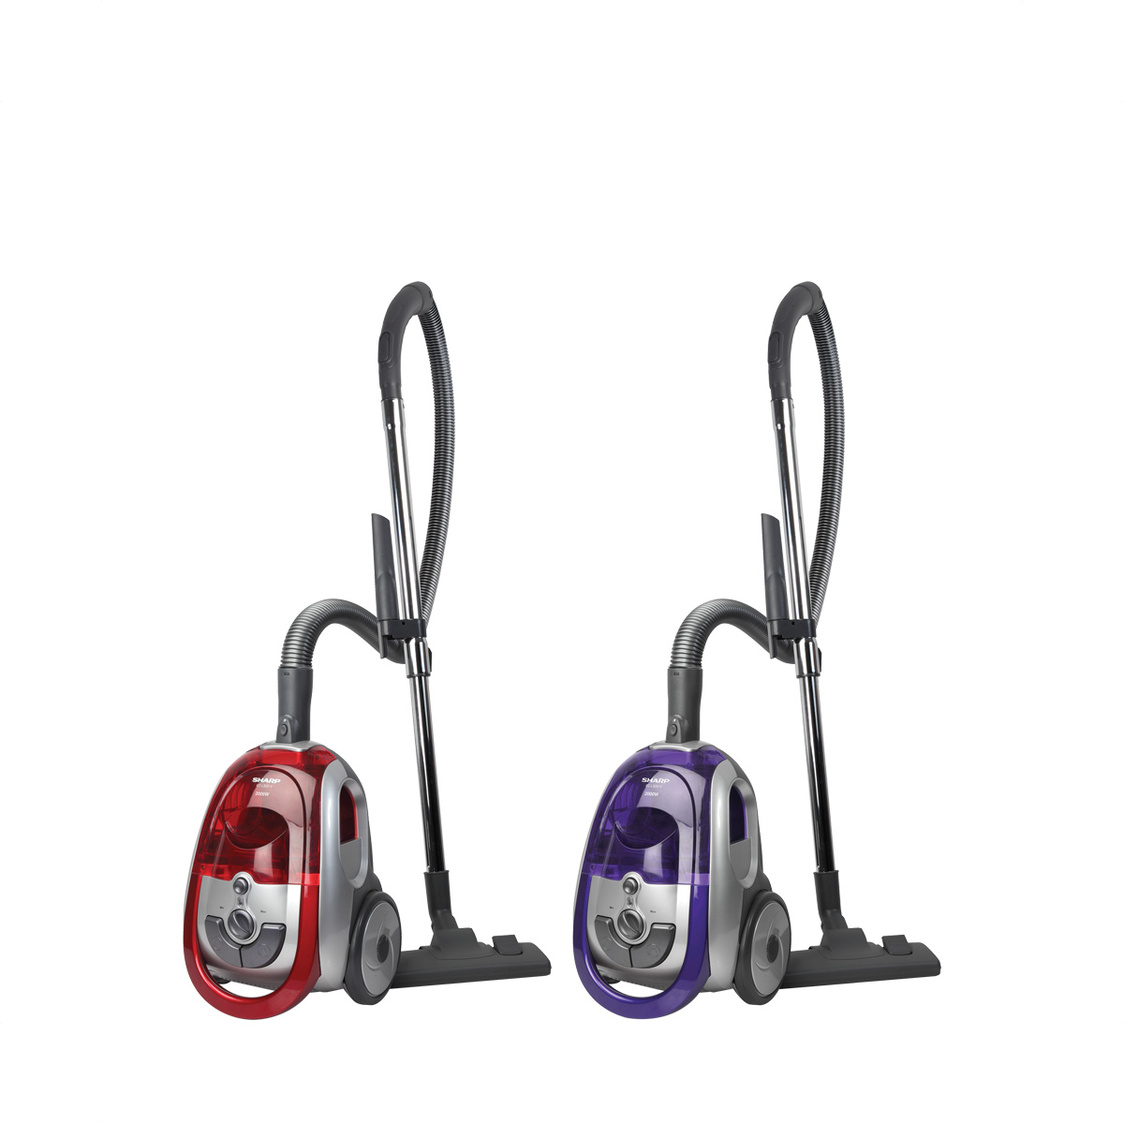 2000W Bagless Vacuum Cleaner with Variable Power Control